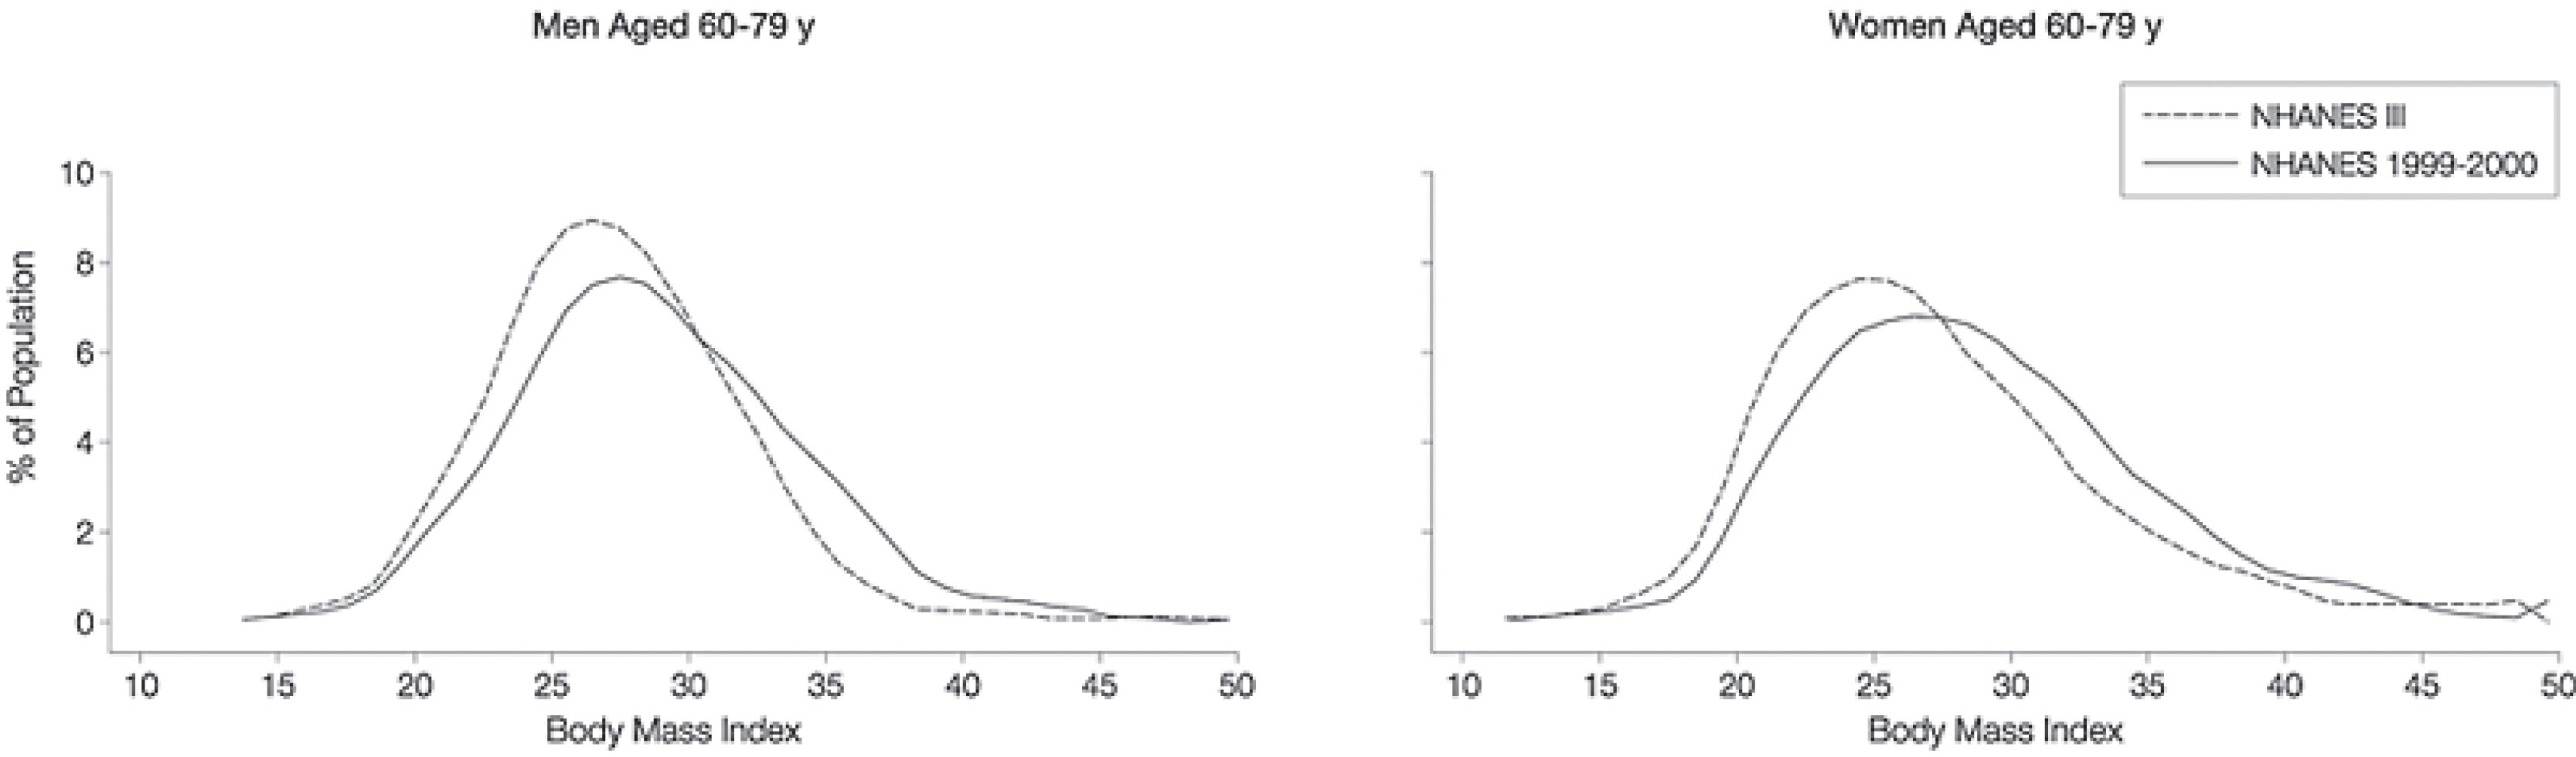 Figure 1: Distributions of Body Mass Index from NHANES III (1988-1994) and NHANES 1999-2000 (Flegal, K.M., Carroll, M.D., Ogden, C.L., & Johnson, C.L. (2002)).